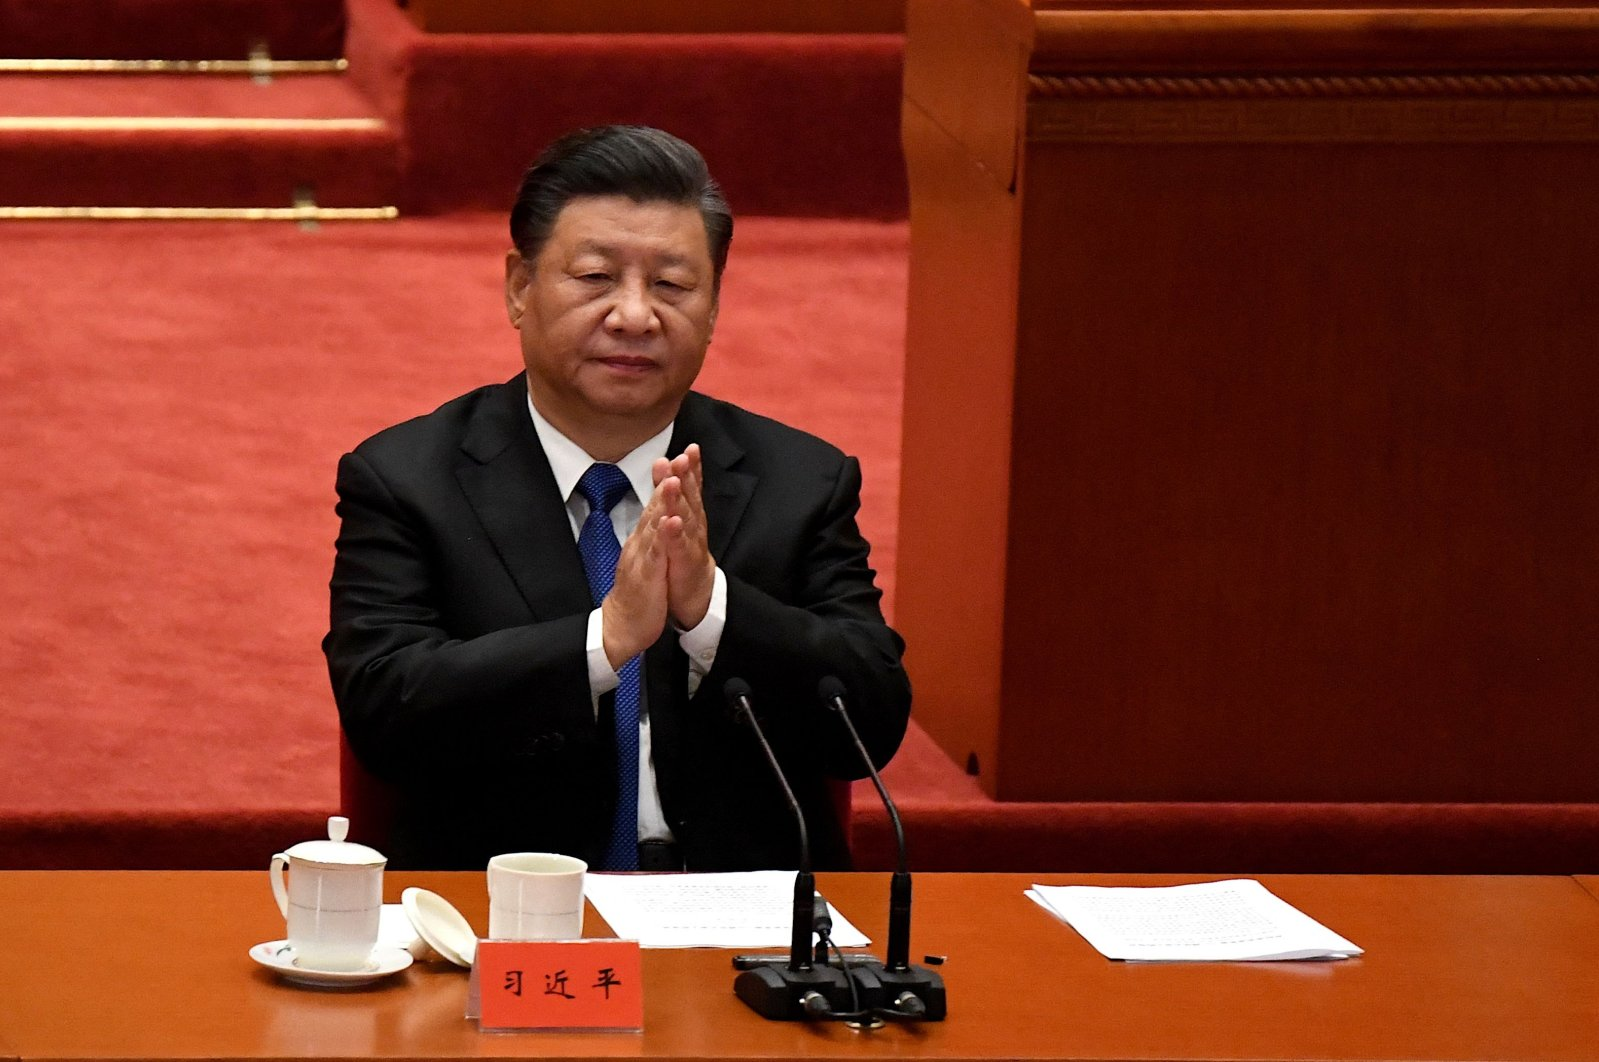 Chinese President Xi Jinping attends the commemoration of the 110th anniversary of the Xinhai Revolution, which overthrew the Qing Dynasty and led to the founding of the Republic of China, at the Great Hall of the People in Beijing, China, Oct. 9, 2021. (AFP Photo)